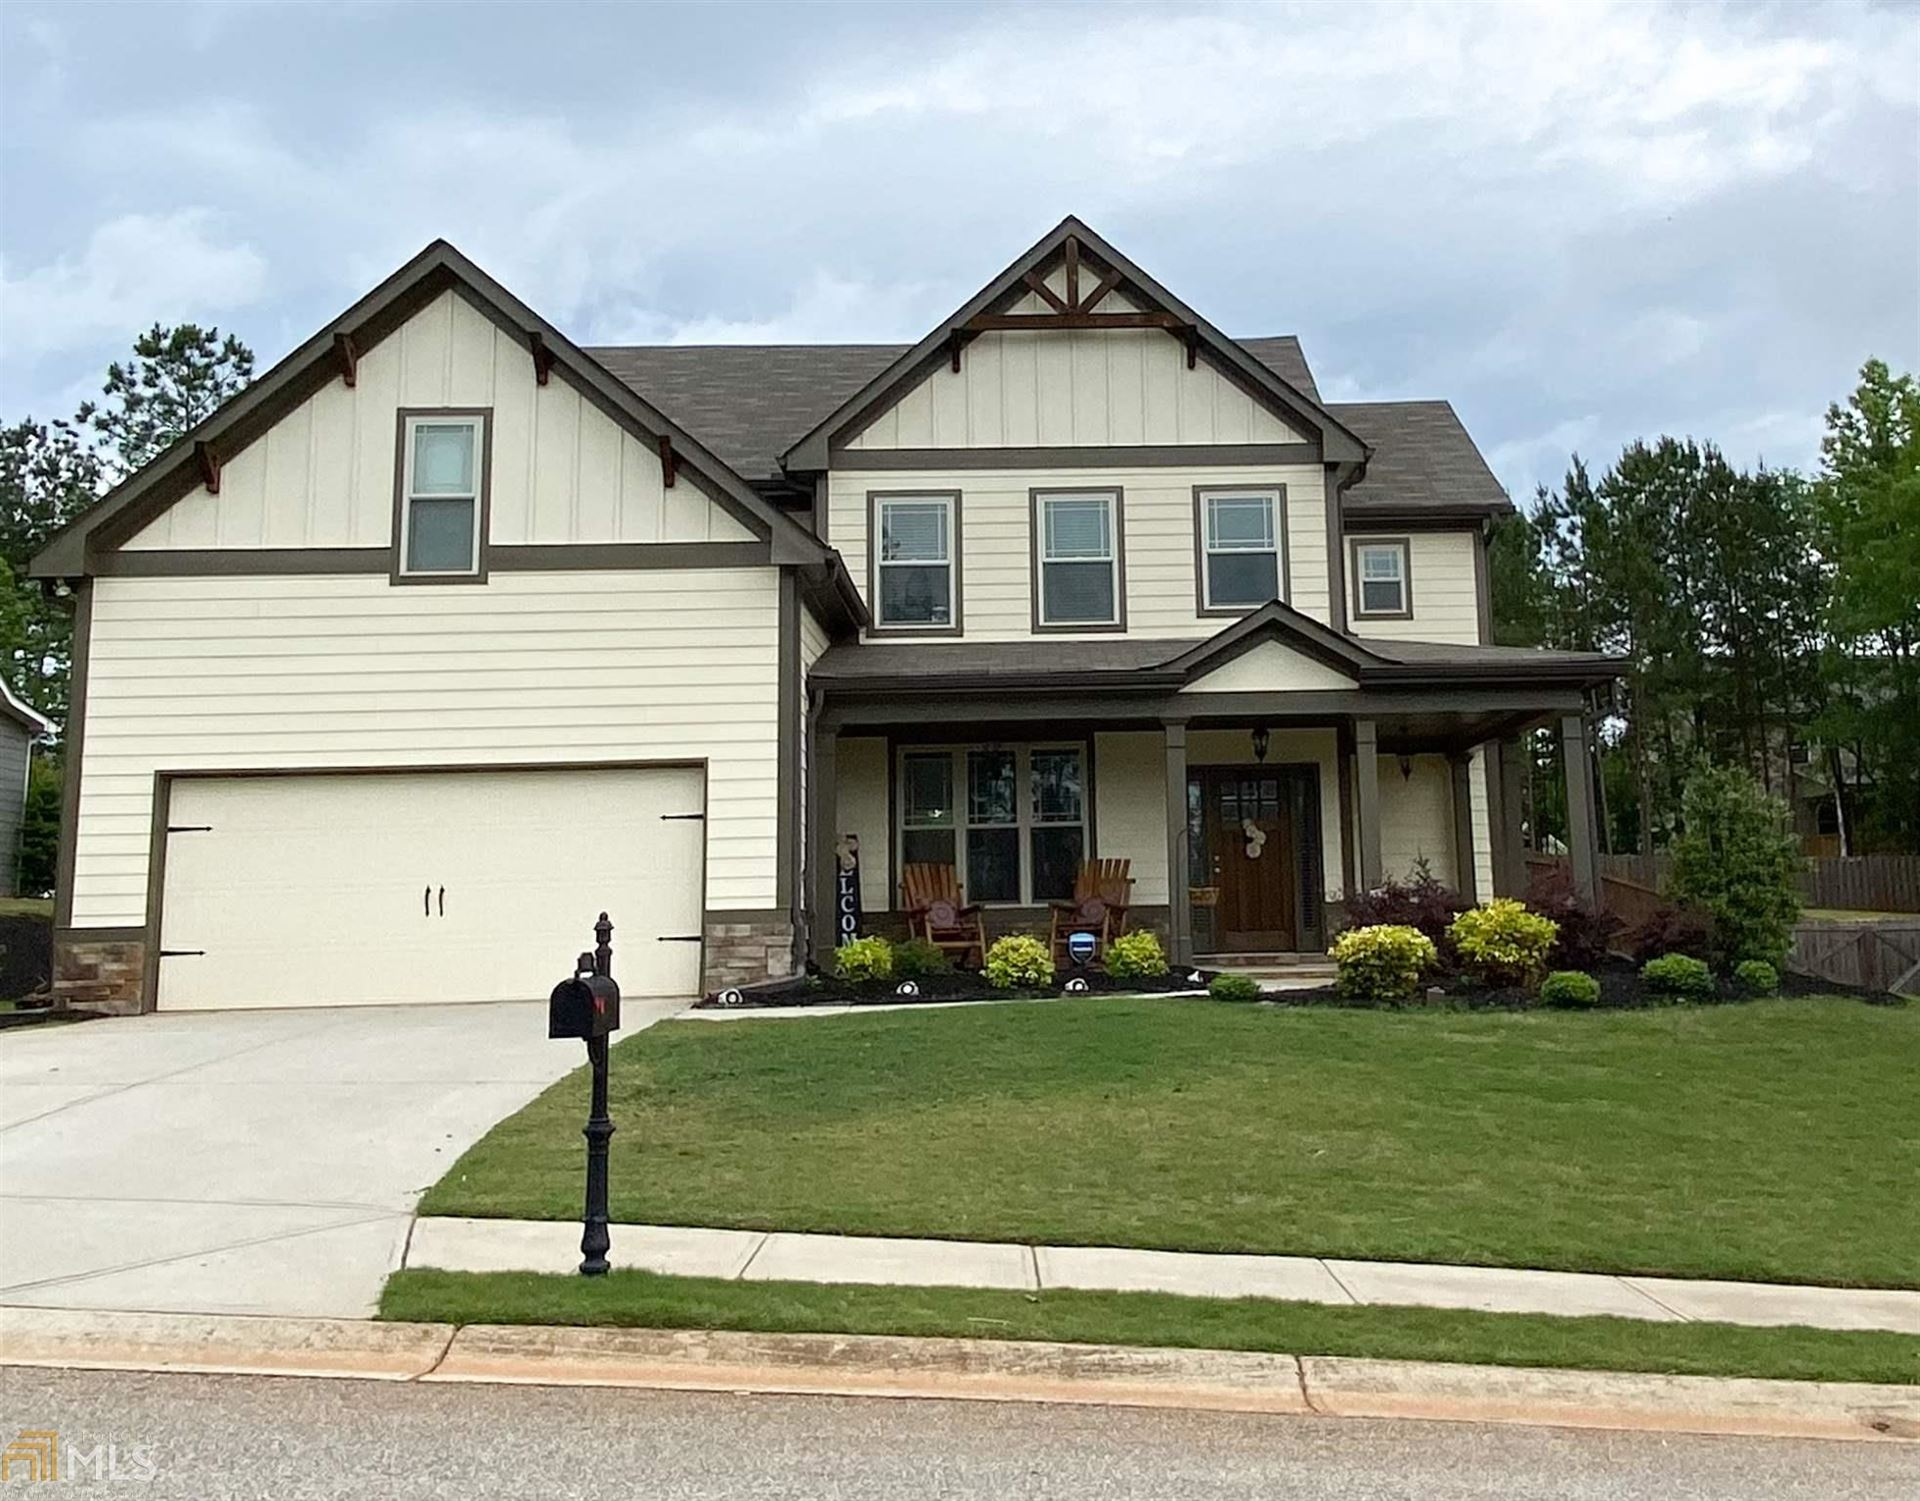 554 Widgeon Way, Jefferson, GA 30549 - #: 8789959